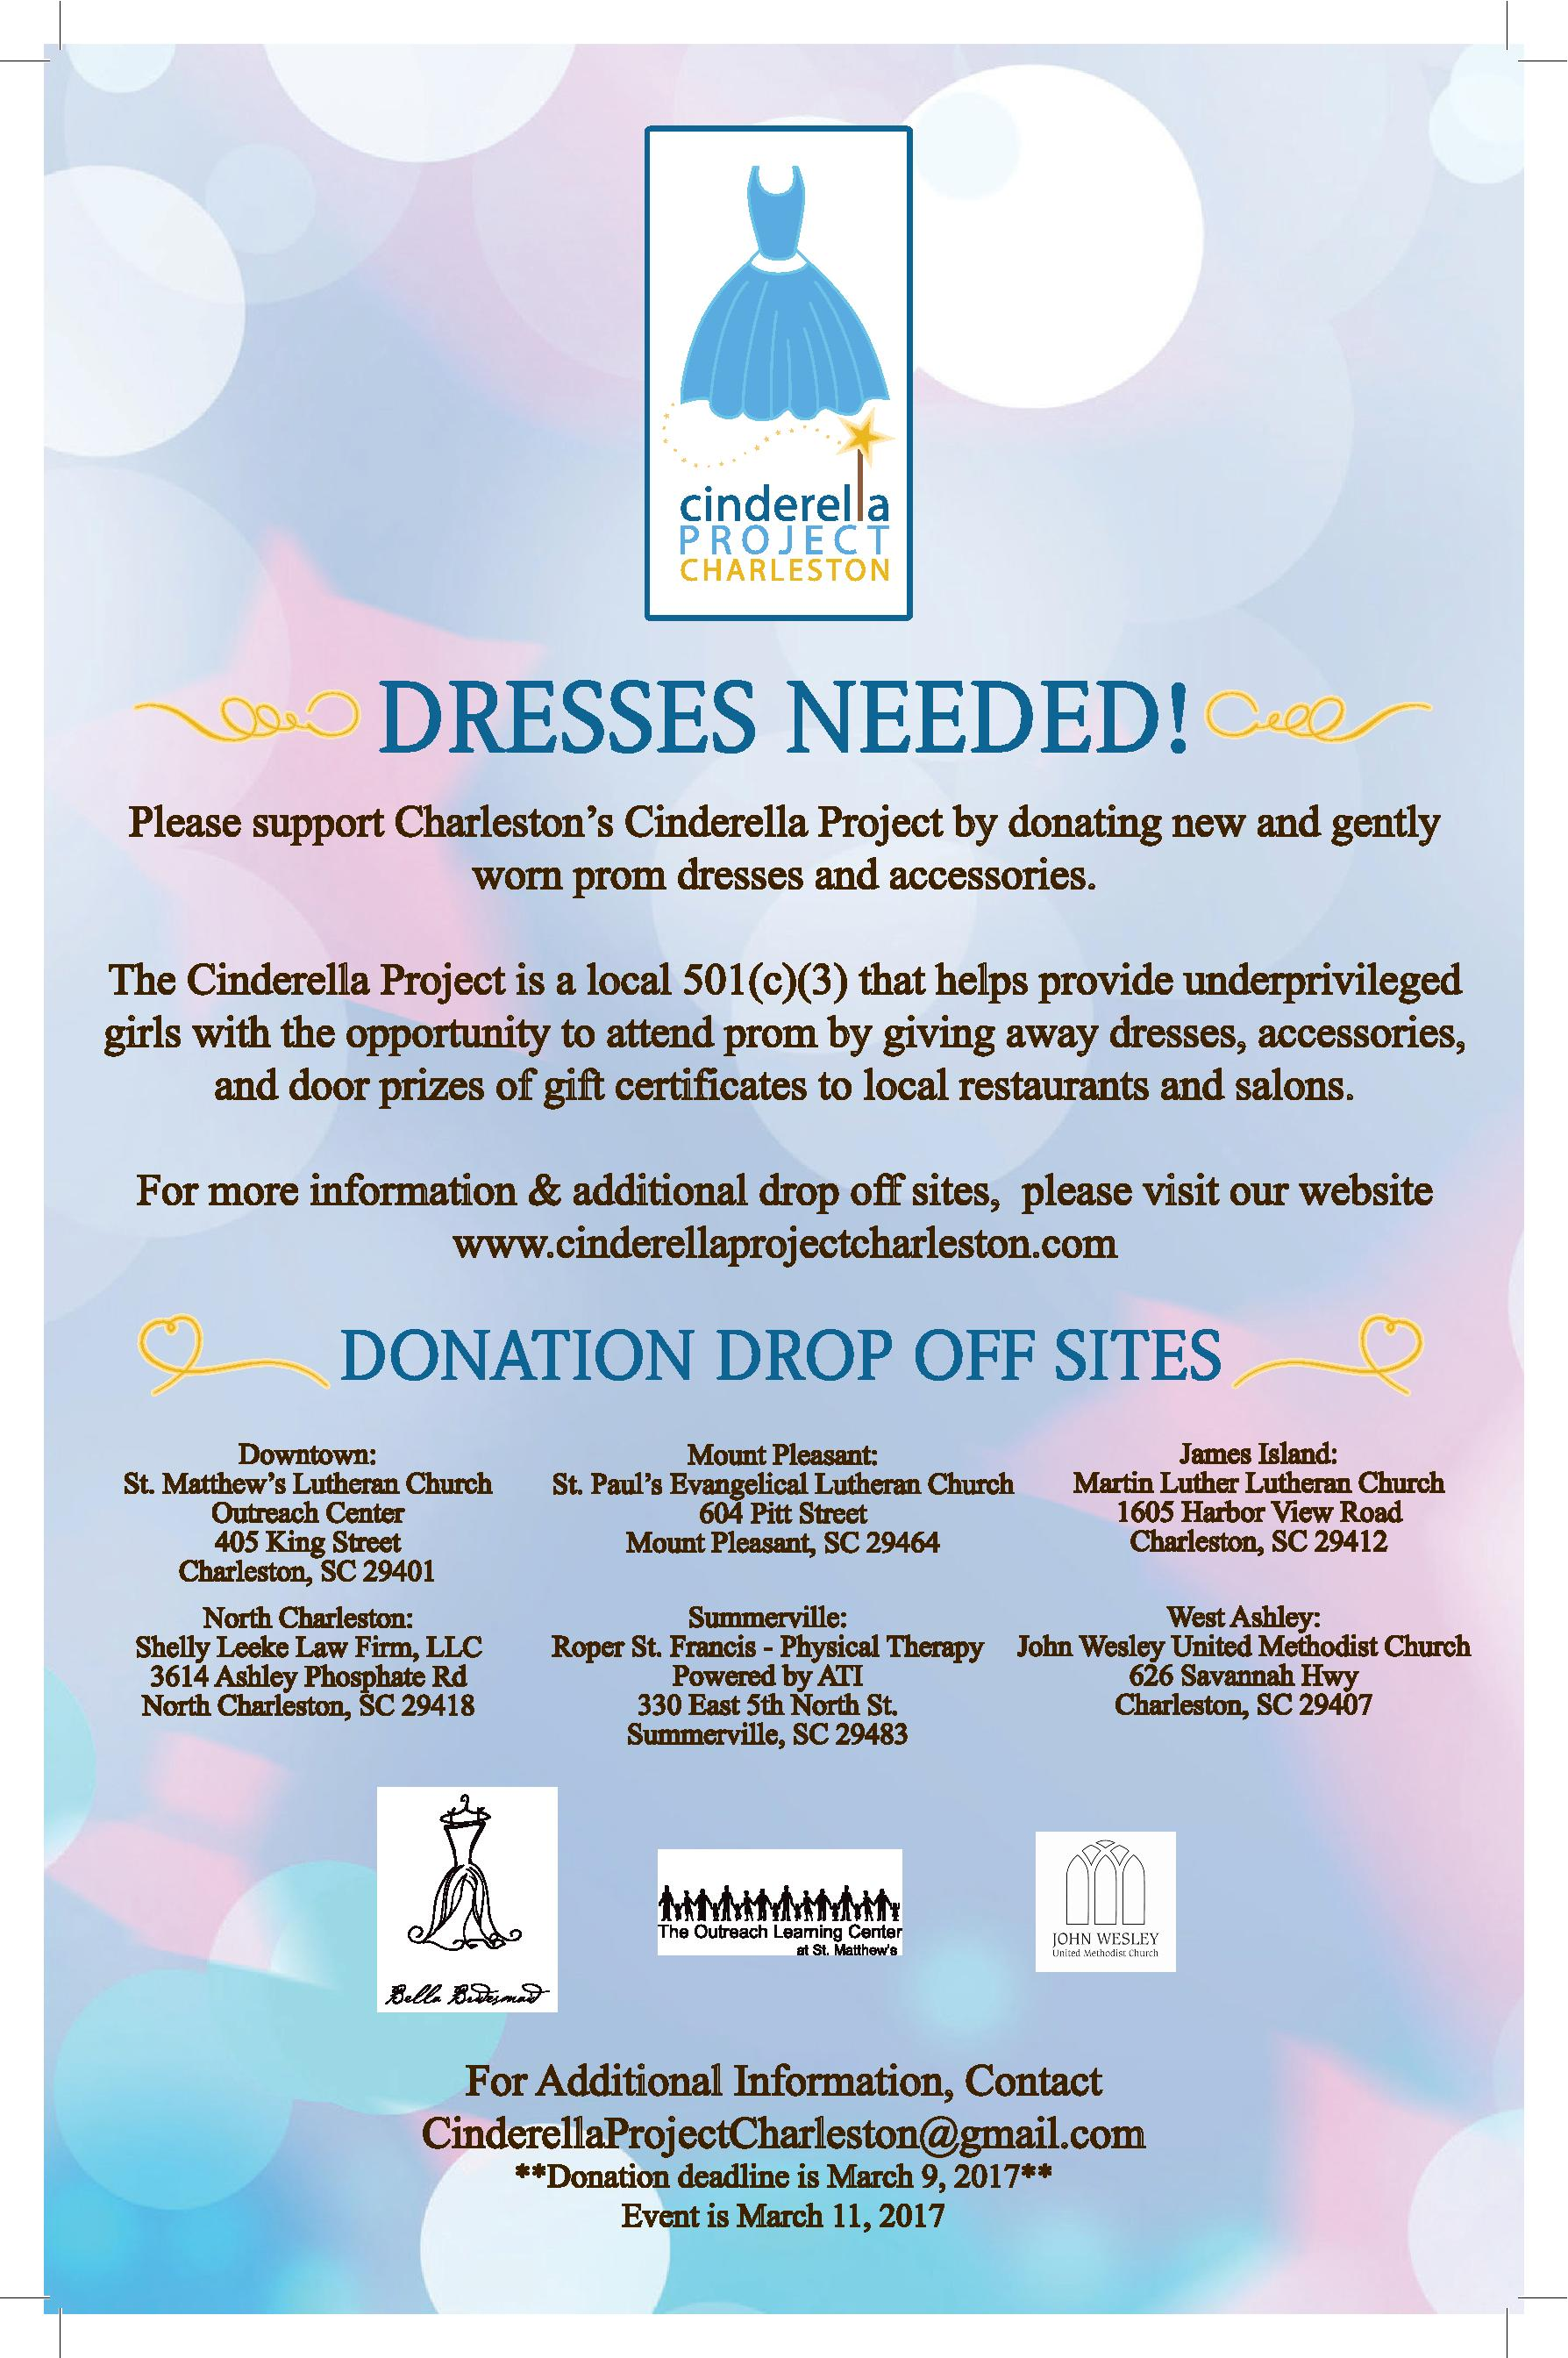 Columbia sc prom dress donation - Dressed for less